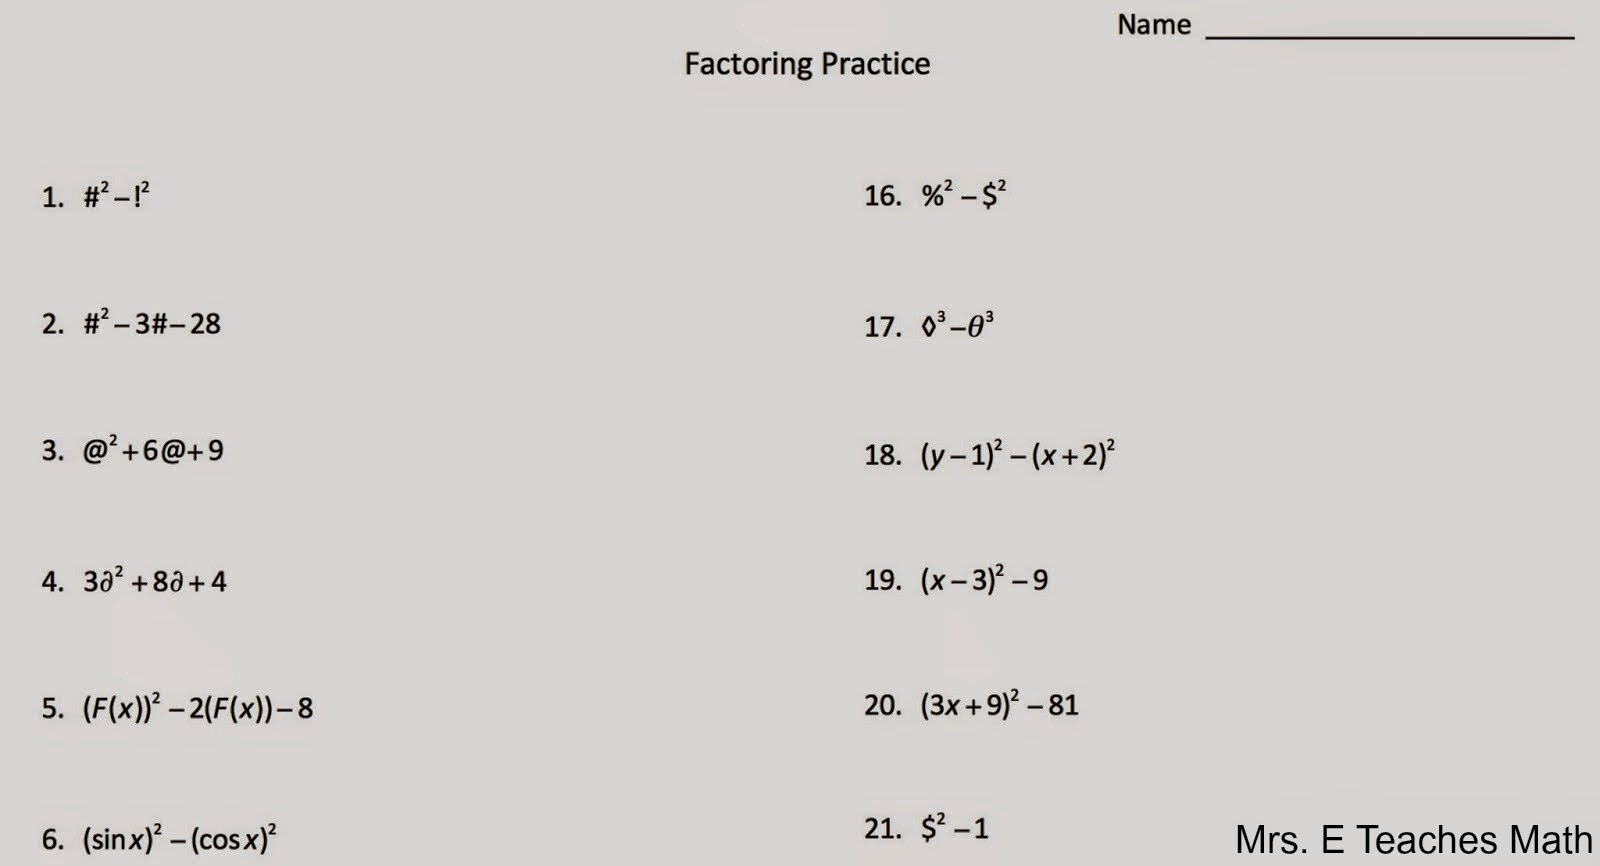 Mrs. E Teaches Math: Factoring with Symbols